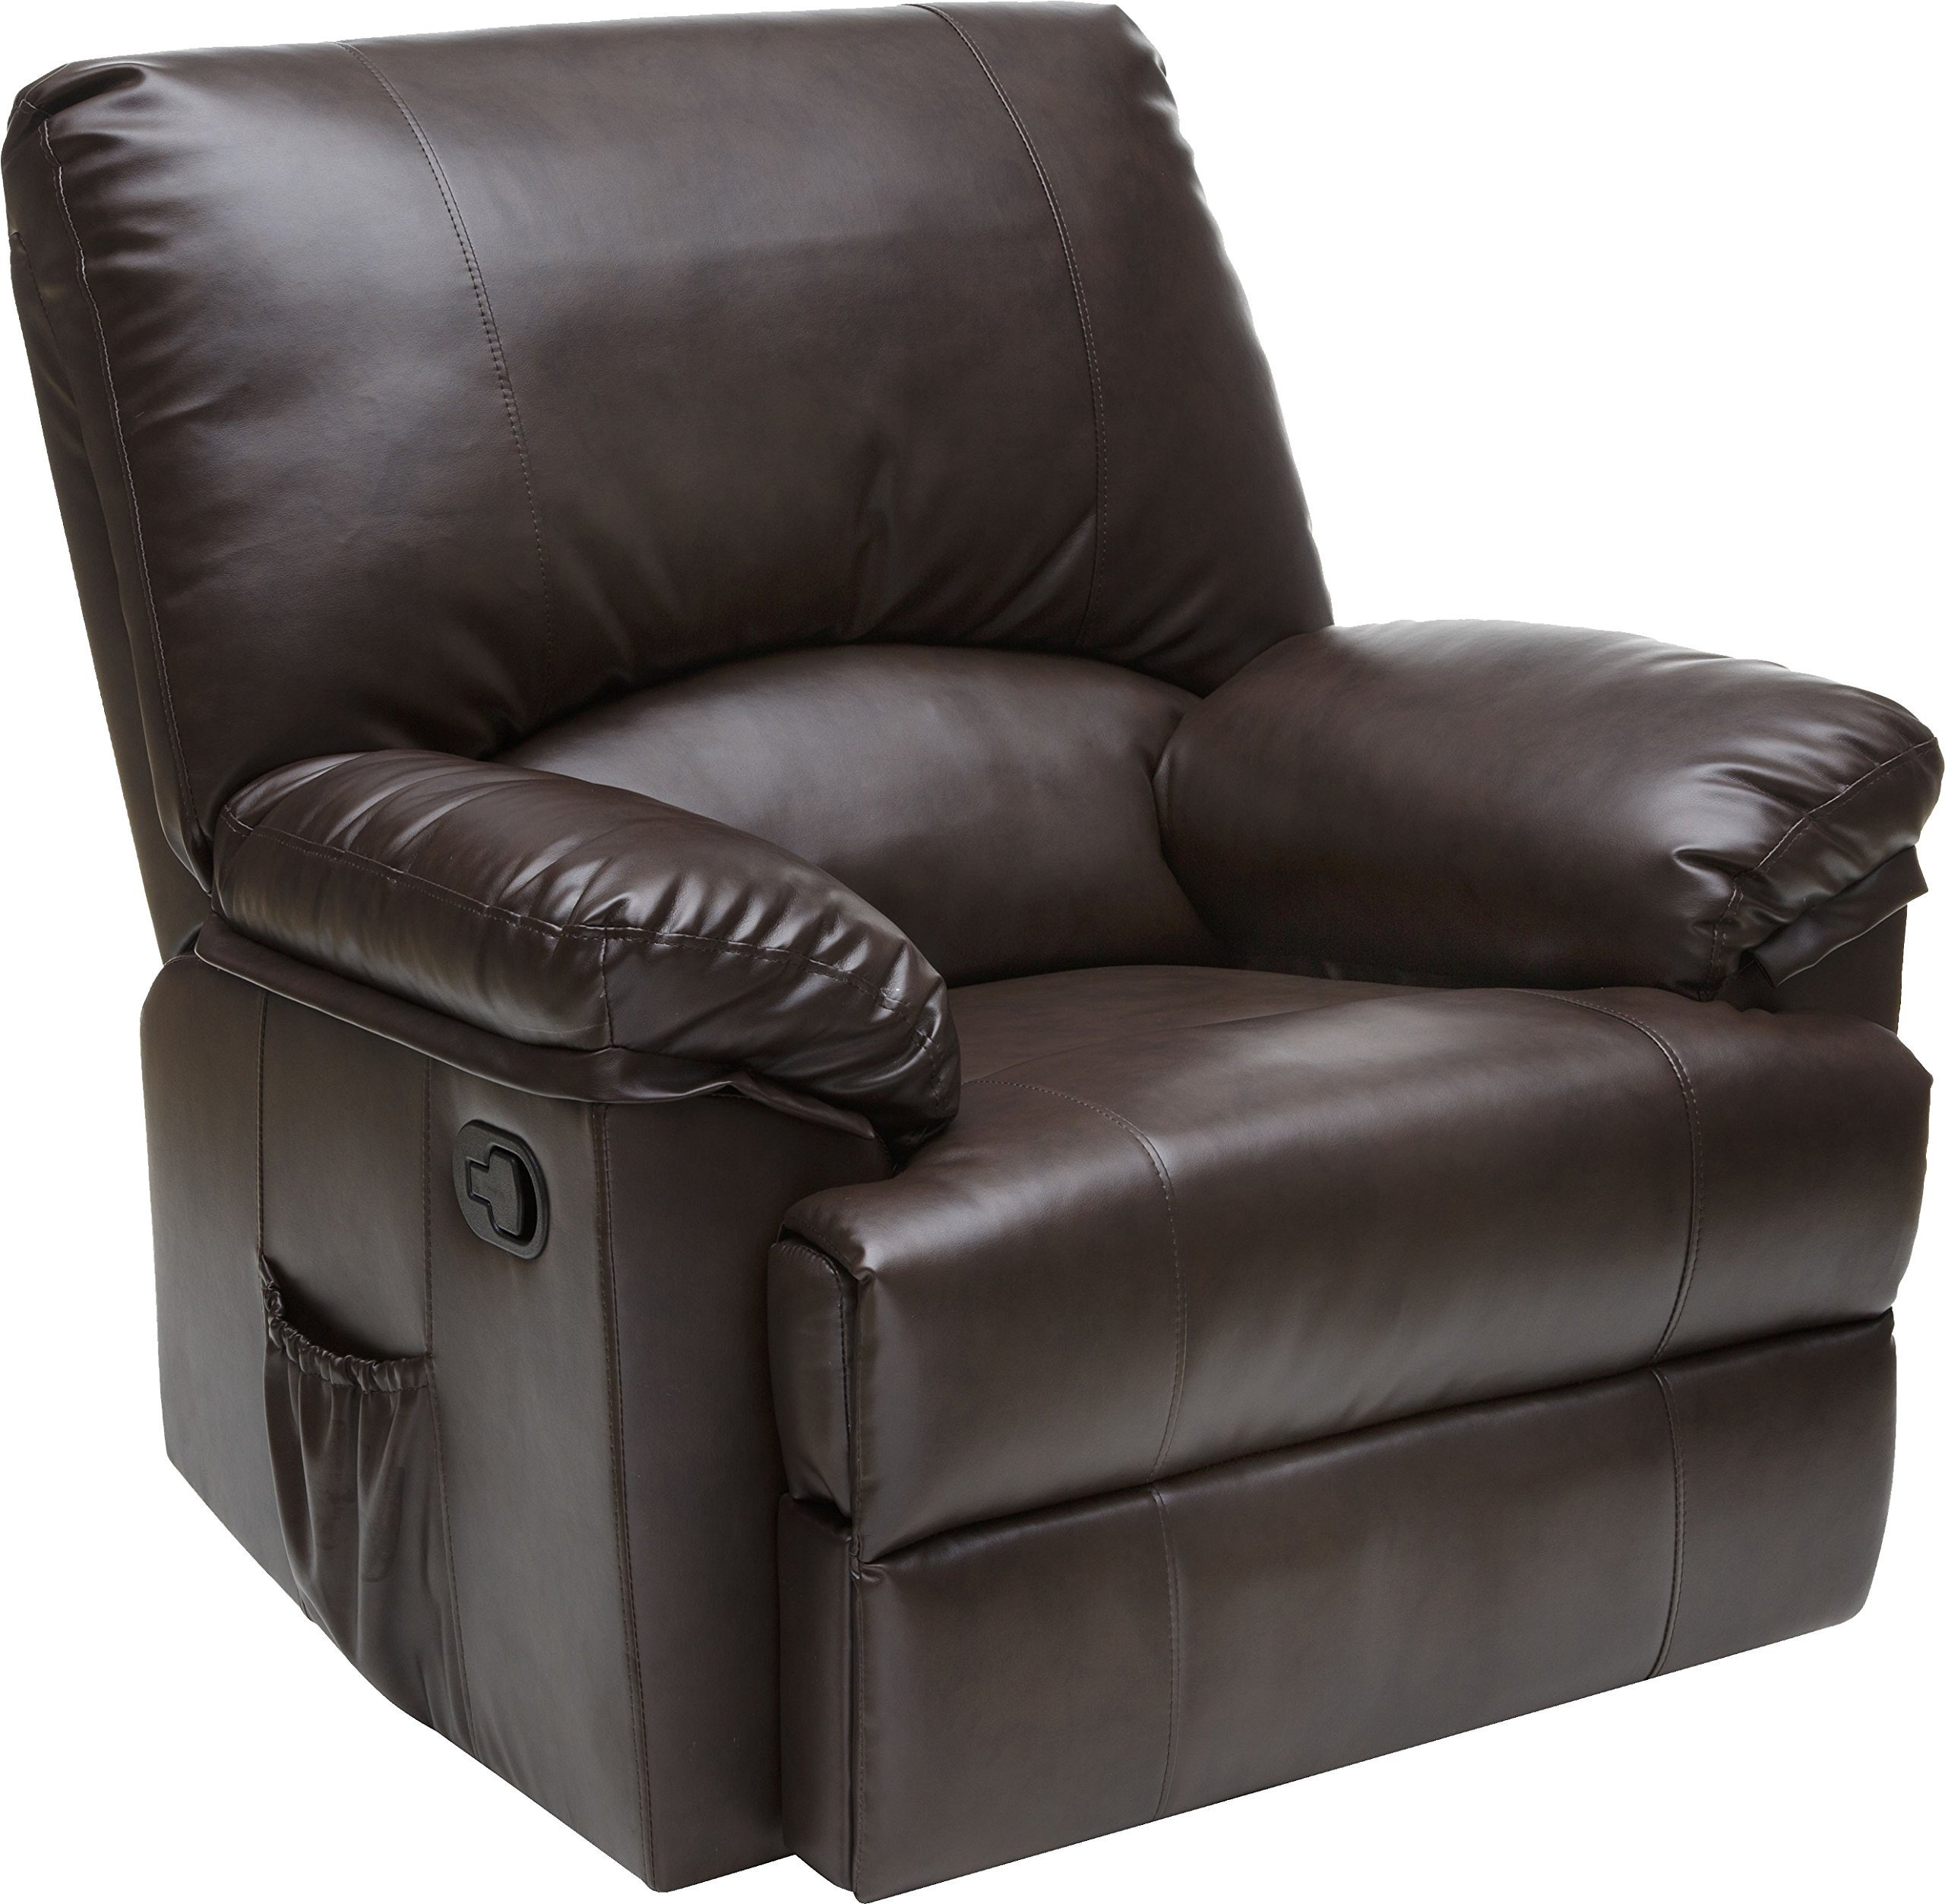 Relaxzen 60-7000M Rocker Recliner with Heat and Massage, Brown Marbled Leather